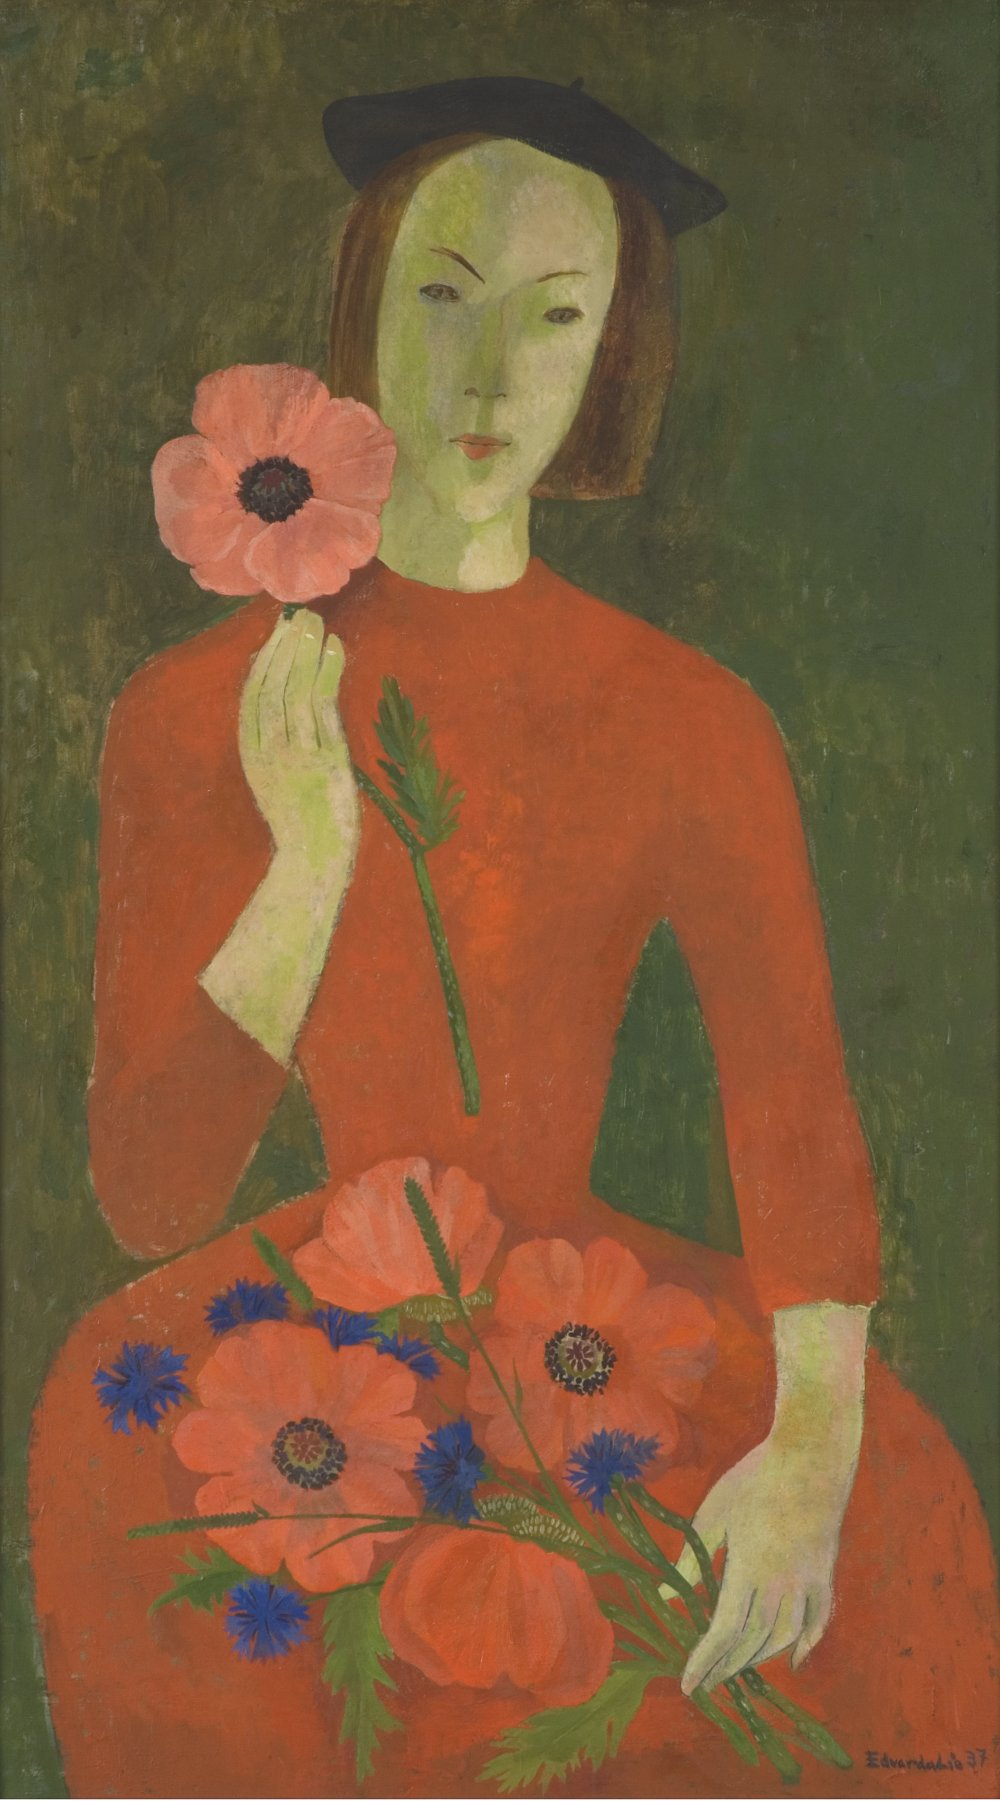 Pike med blomster [Girl With Flowers]